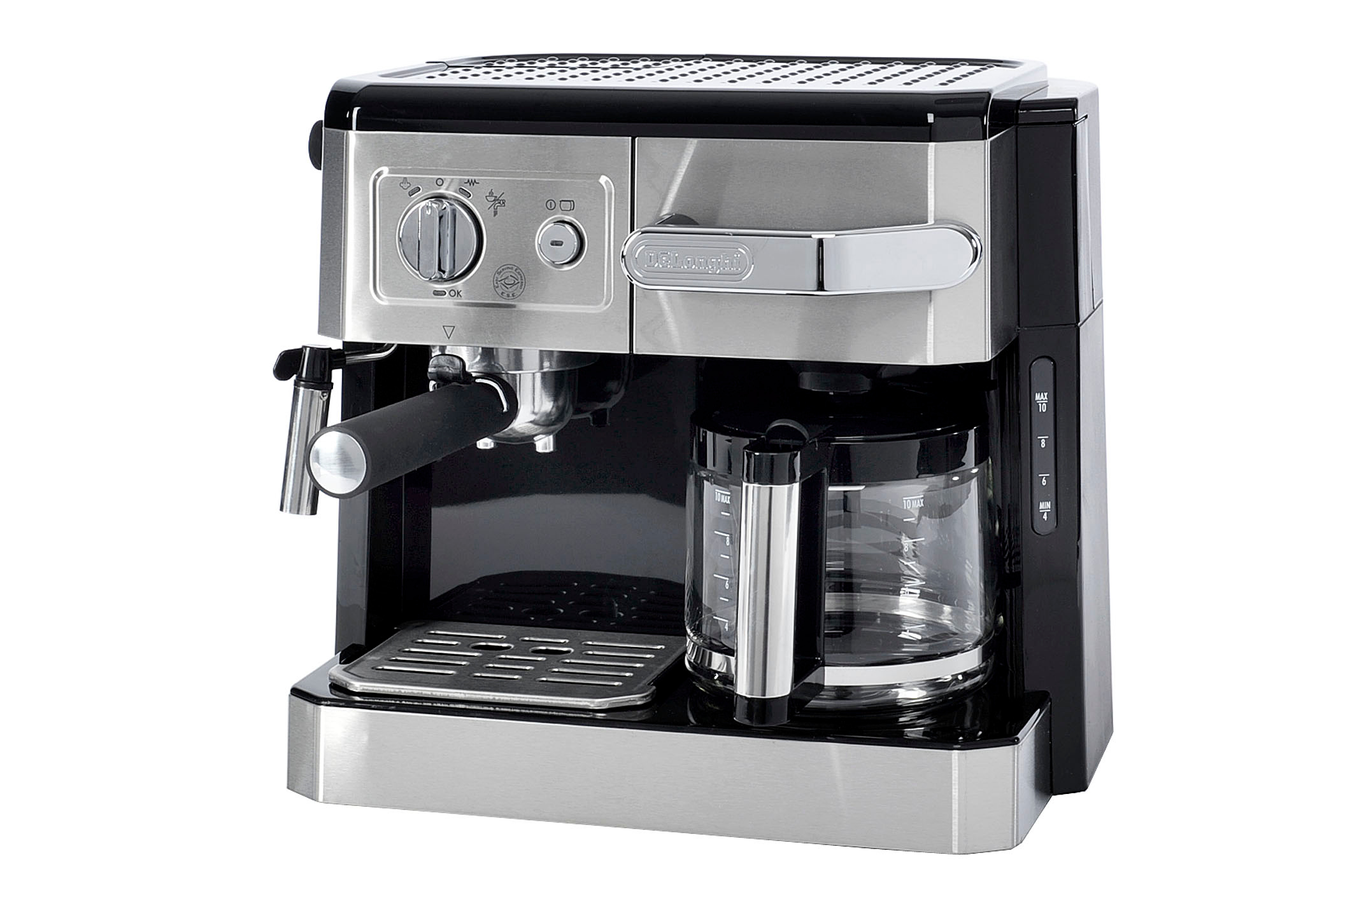 combin expresso cafeti re delonghi bco420 metal. Black Bedroom Furniture Sets. Home Design Ideas